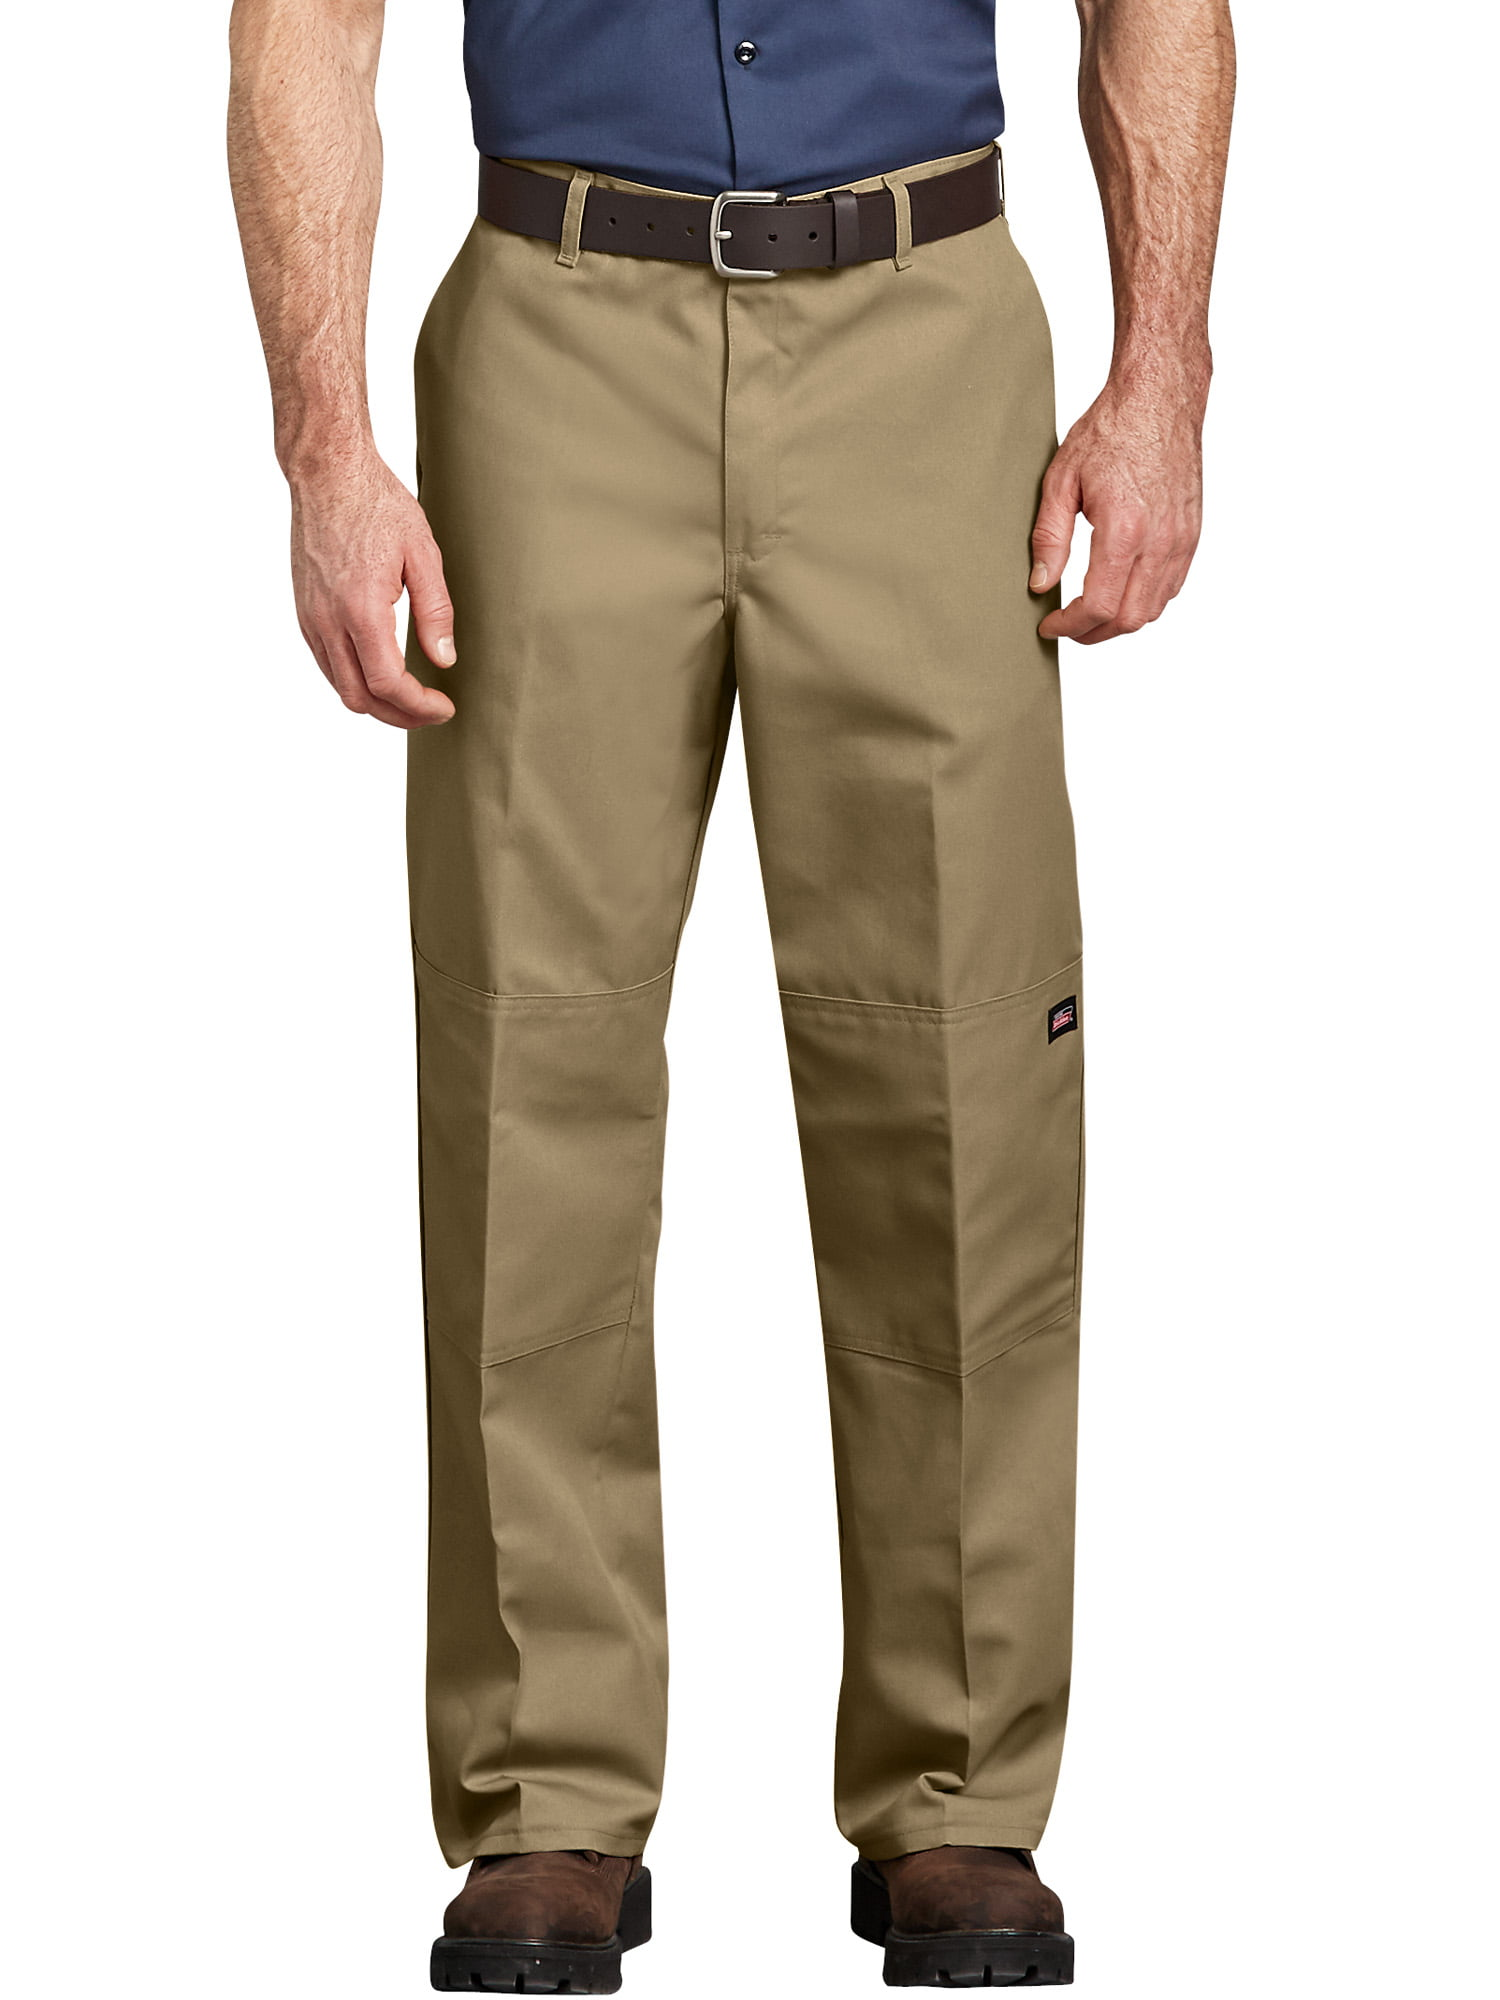 6e2fefb6 Genuine Dickies - Men's Loose Fit Straight Leg Double-Knee Work Pants -  Walmart.com